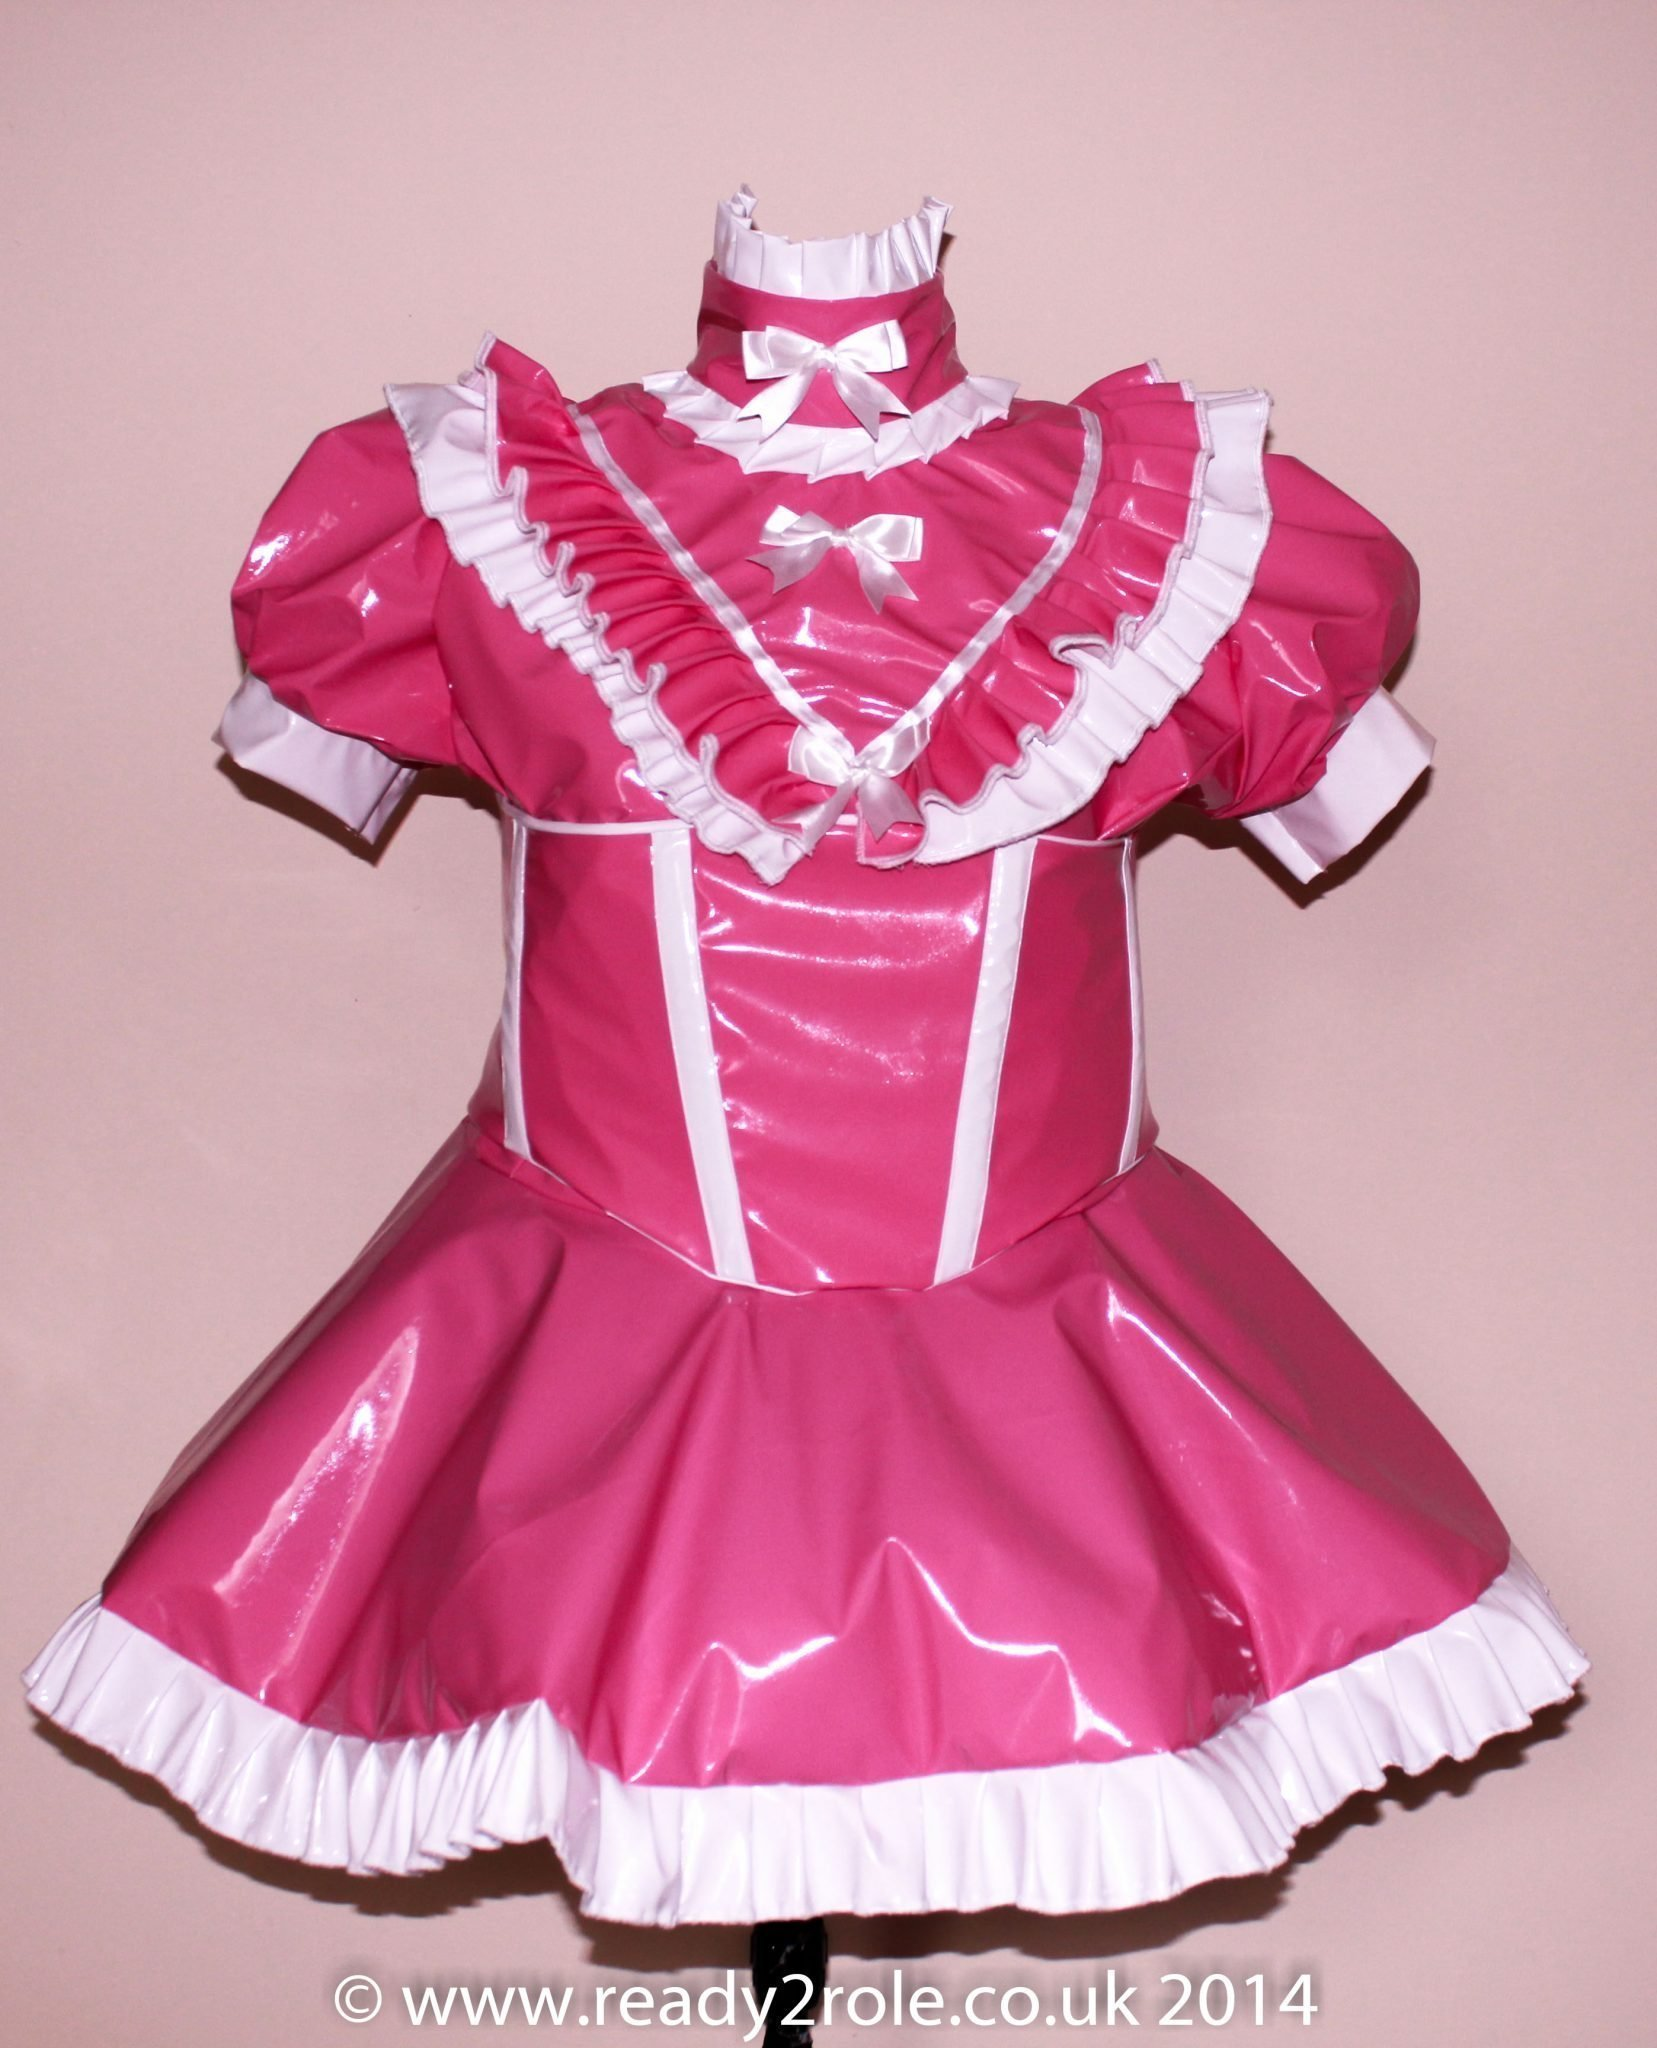 Sissy Candy Cupcake (Pink) PVC Dress With Boned Corset